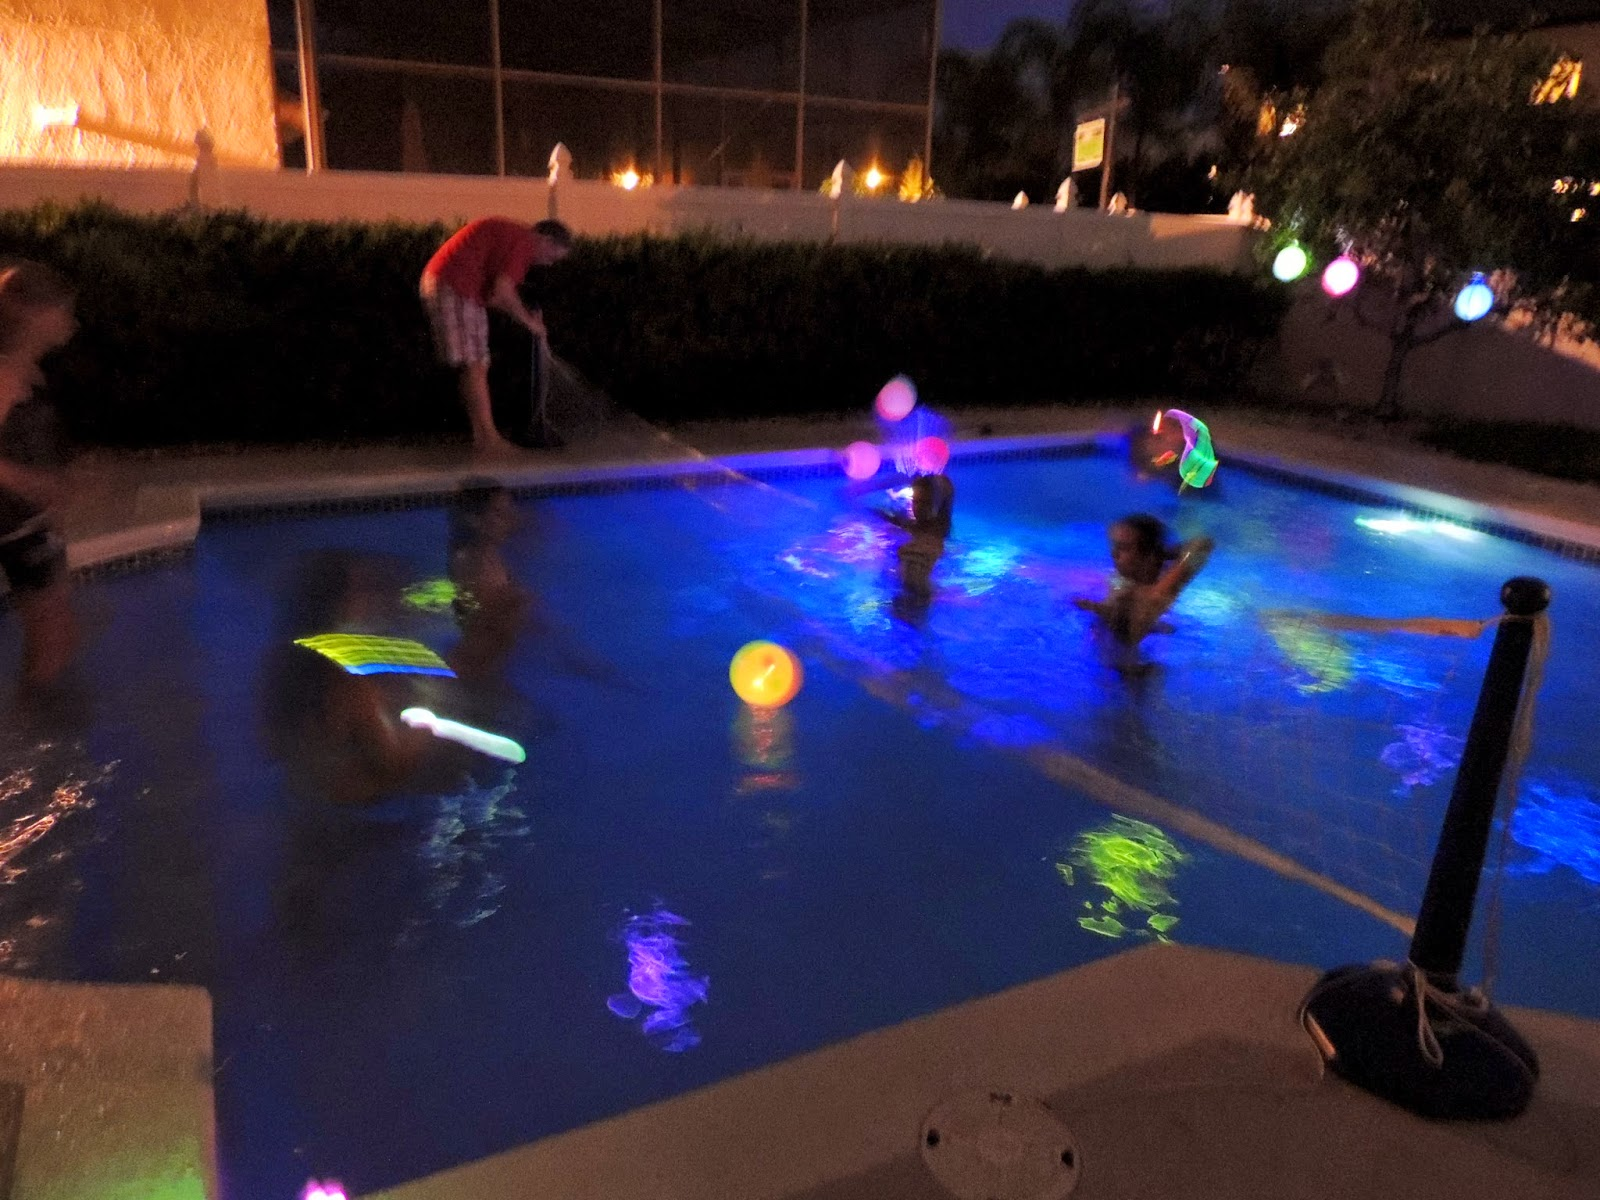 Glow in the dark pool party party planning ideas - Glow in the dark swimming pool toys ...